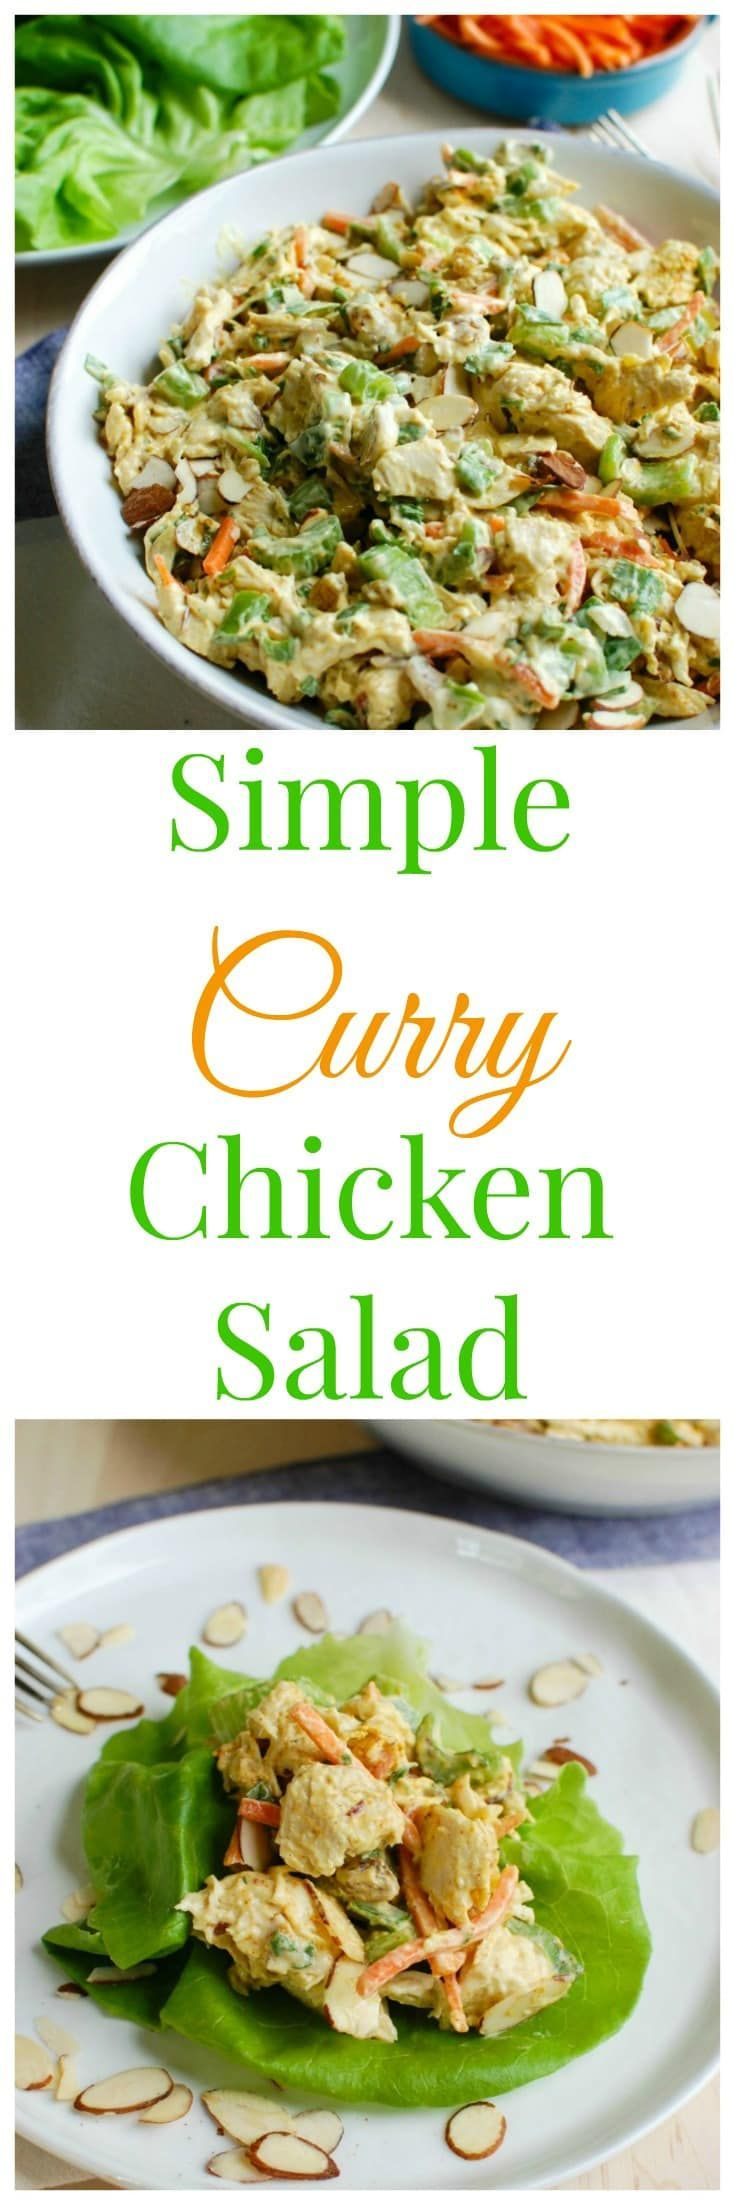 Simple Curry Chicken Salad is a lightened up version of classic chicken salad with rich, warm curry added in. Shredded chicken is mixed together with Greek yogurt, mayonnaise, honey and curry and then combined with golden raisins, shredded carrots, chopped celery, fresh green onion and parsley.  This is a nice option for a picnic, weekly lunches or a shower or brunch!// A Cedar Spoon